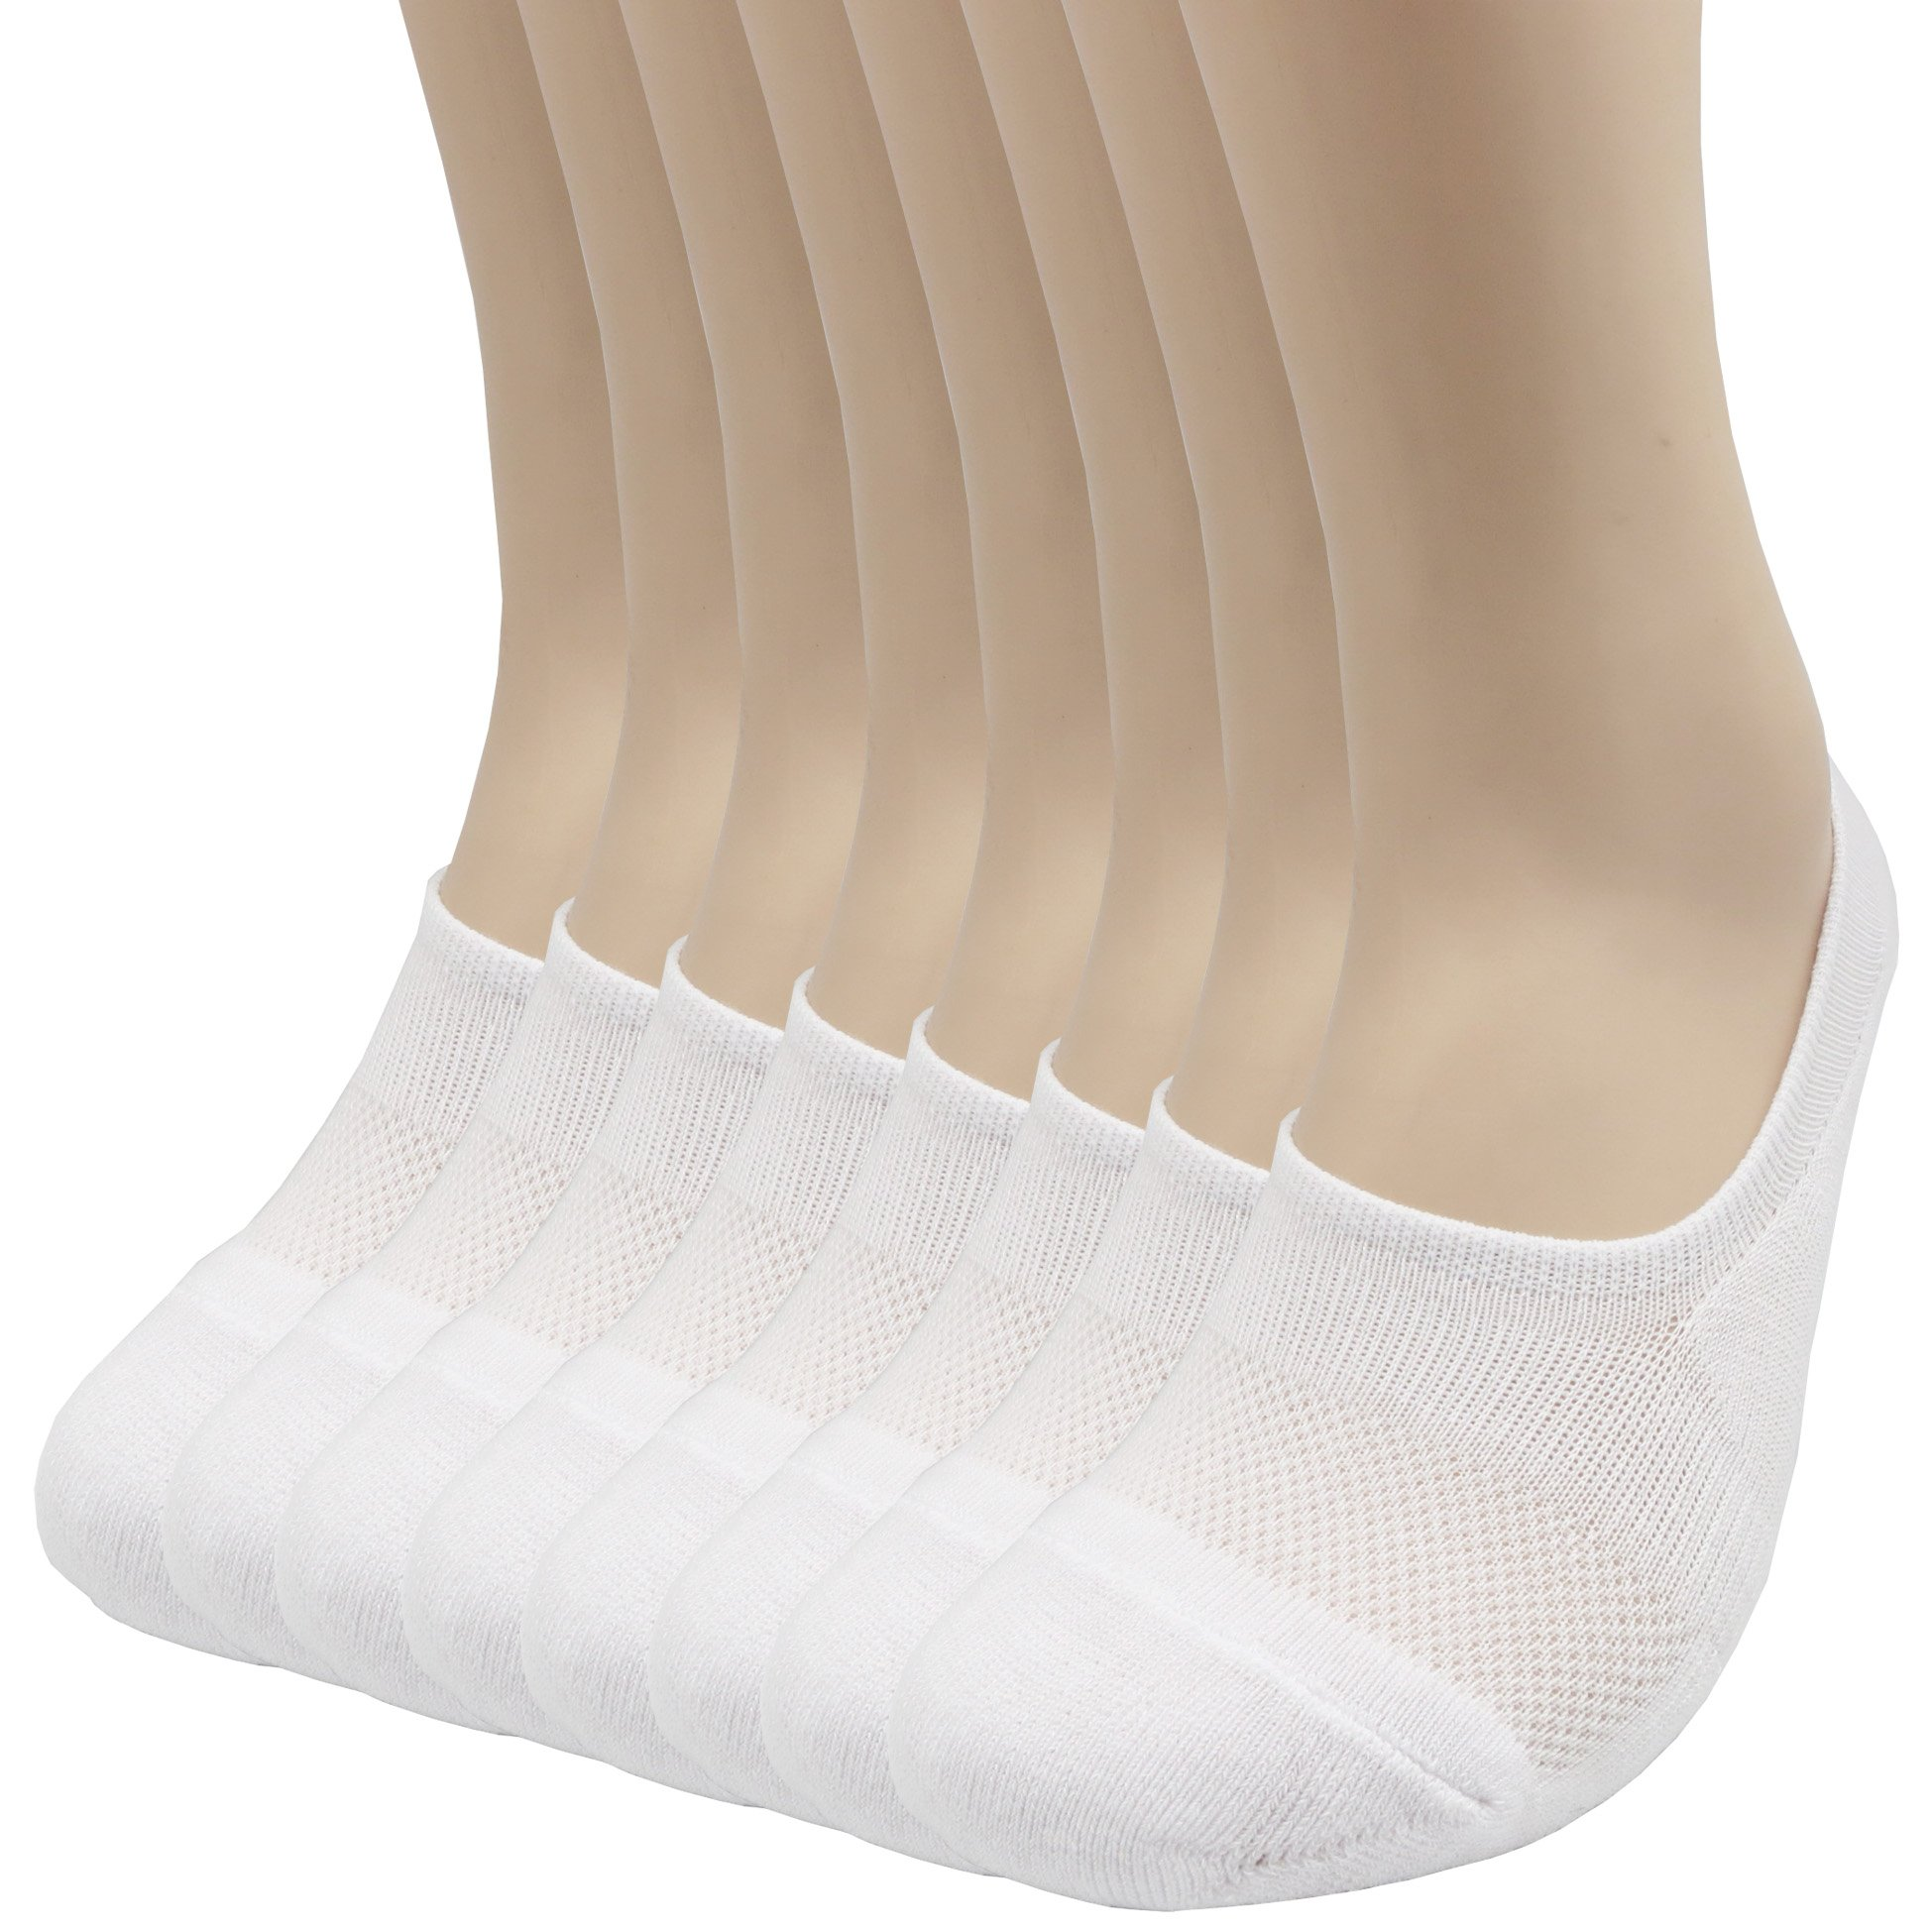 Pro Mountain Women's No Show Flat Cushion Athletic Cotton Footies Sneakers Sports Socks (S(US Women Shoes 5.5~7.5), White 8pairs Pack S-size)